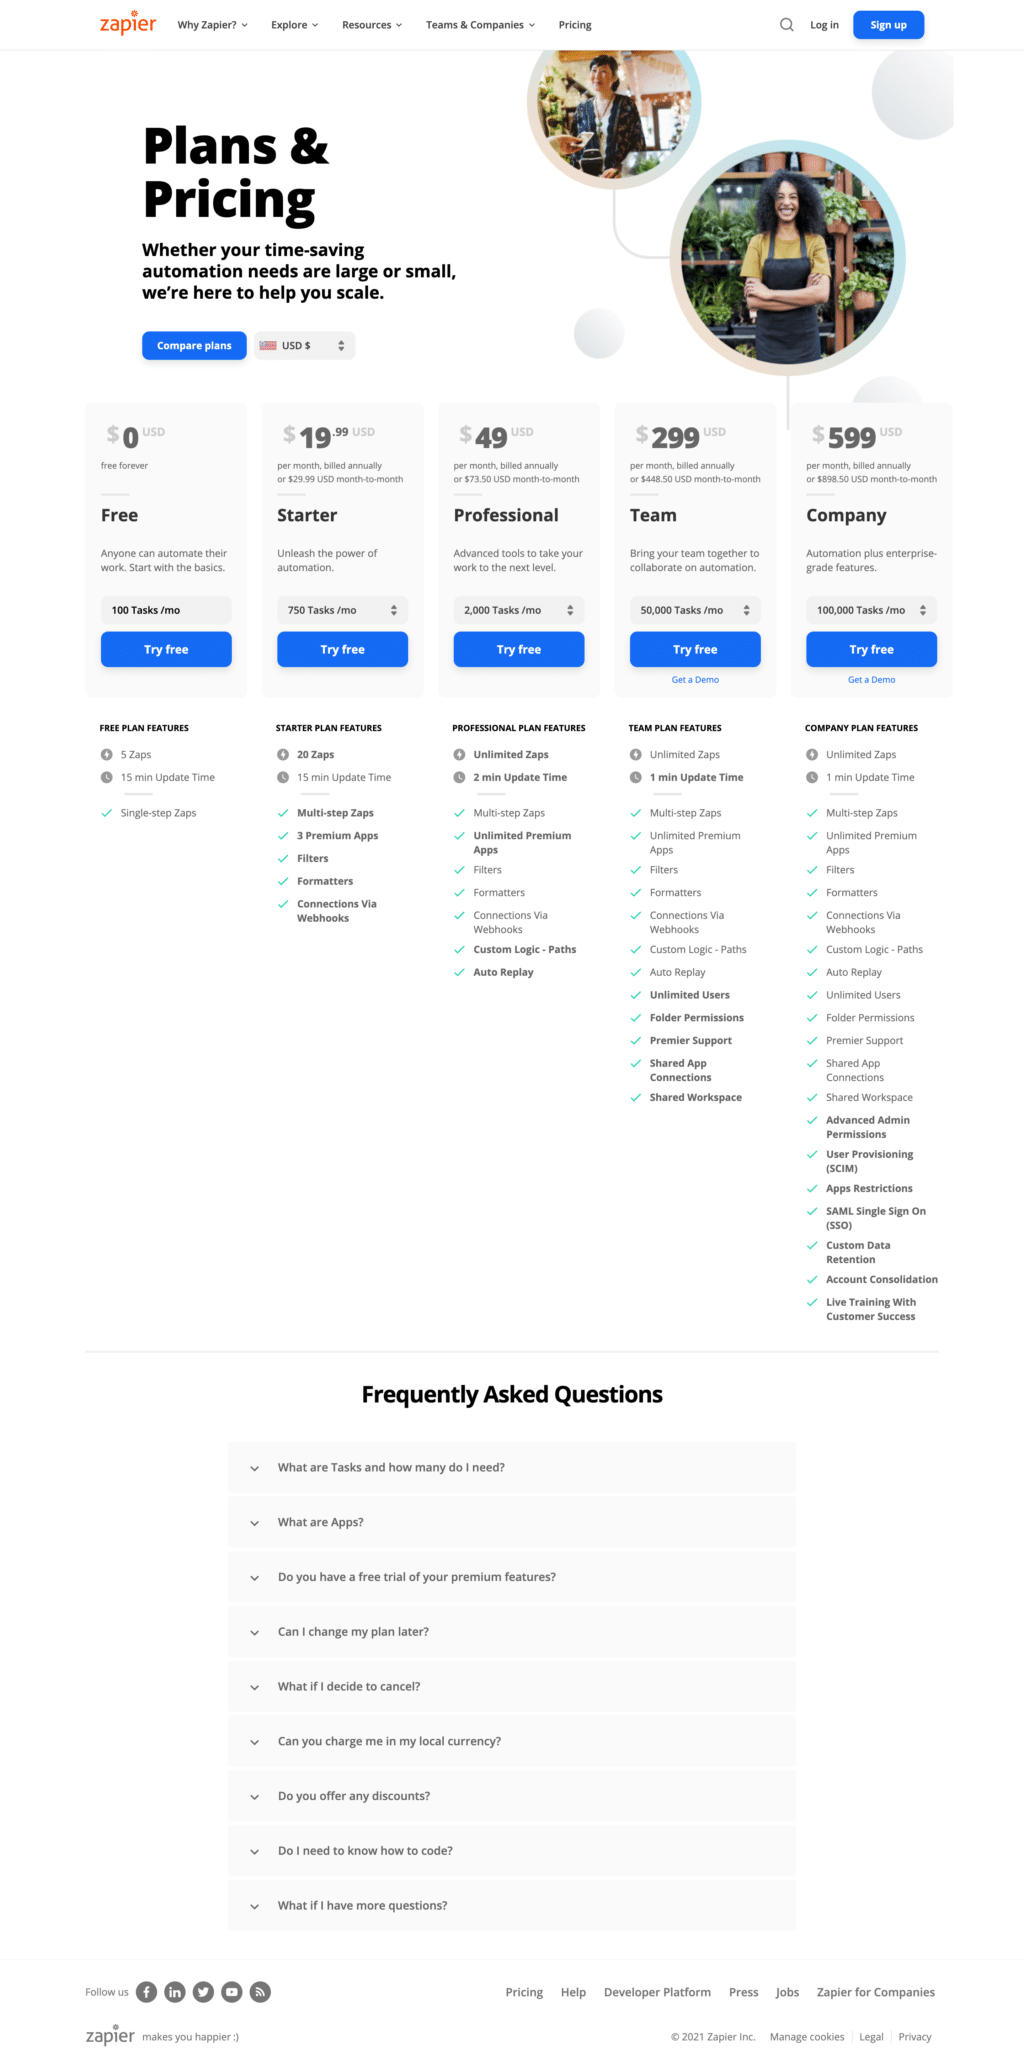 Feature And Usage-Based Pricing Page Examples: Zapier Pricing Page